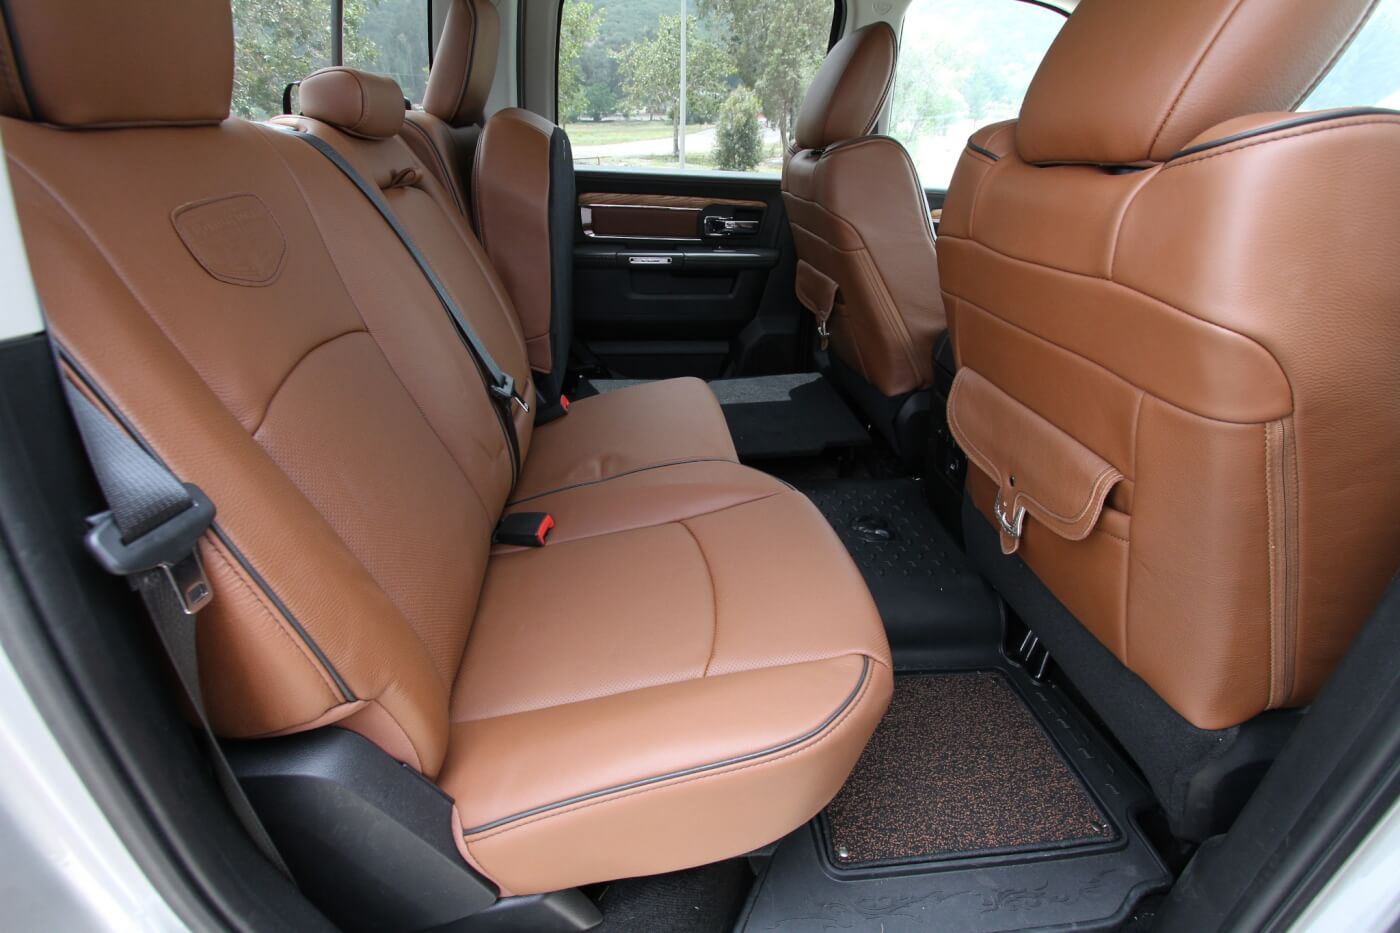 15. The rear seating is almost as roomy as the front seats.